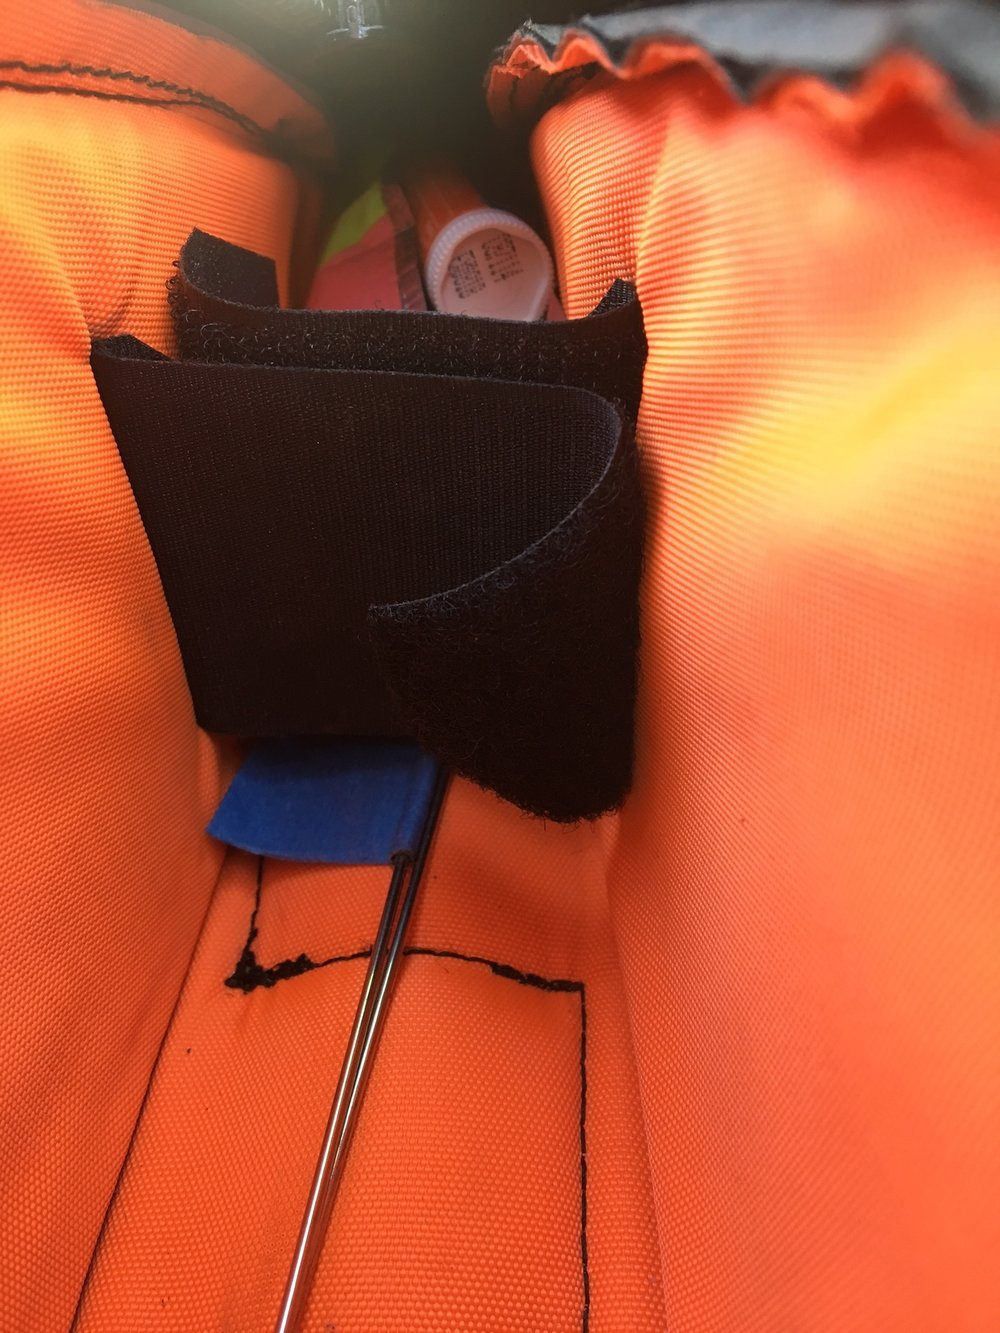 A divider keeps items from shifting around and allows me to widen or narrow the bag somewhat. As well as food, spare spokes are kept inside this bag.